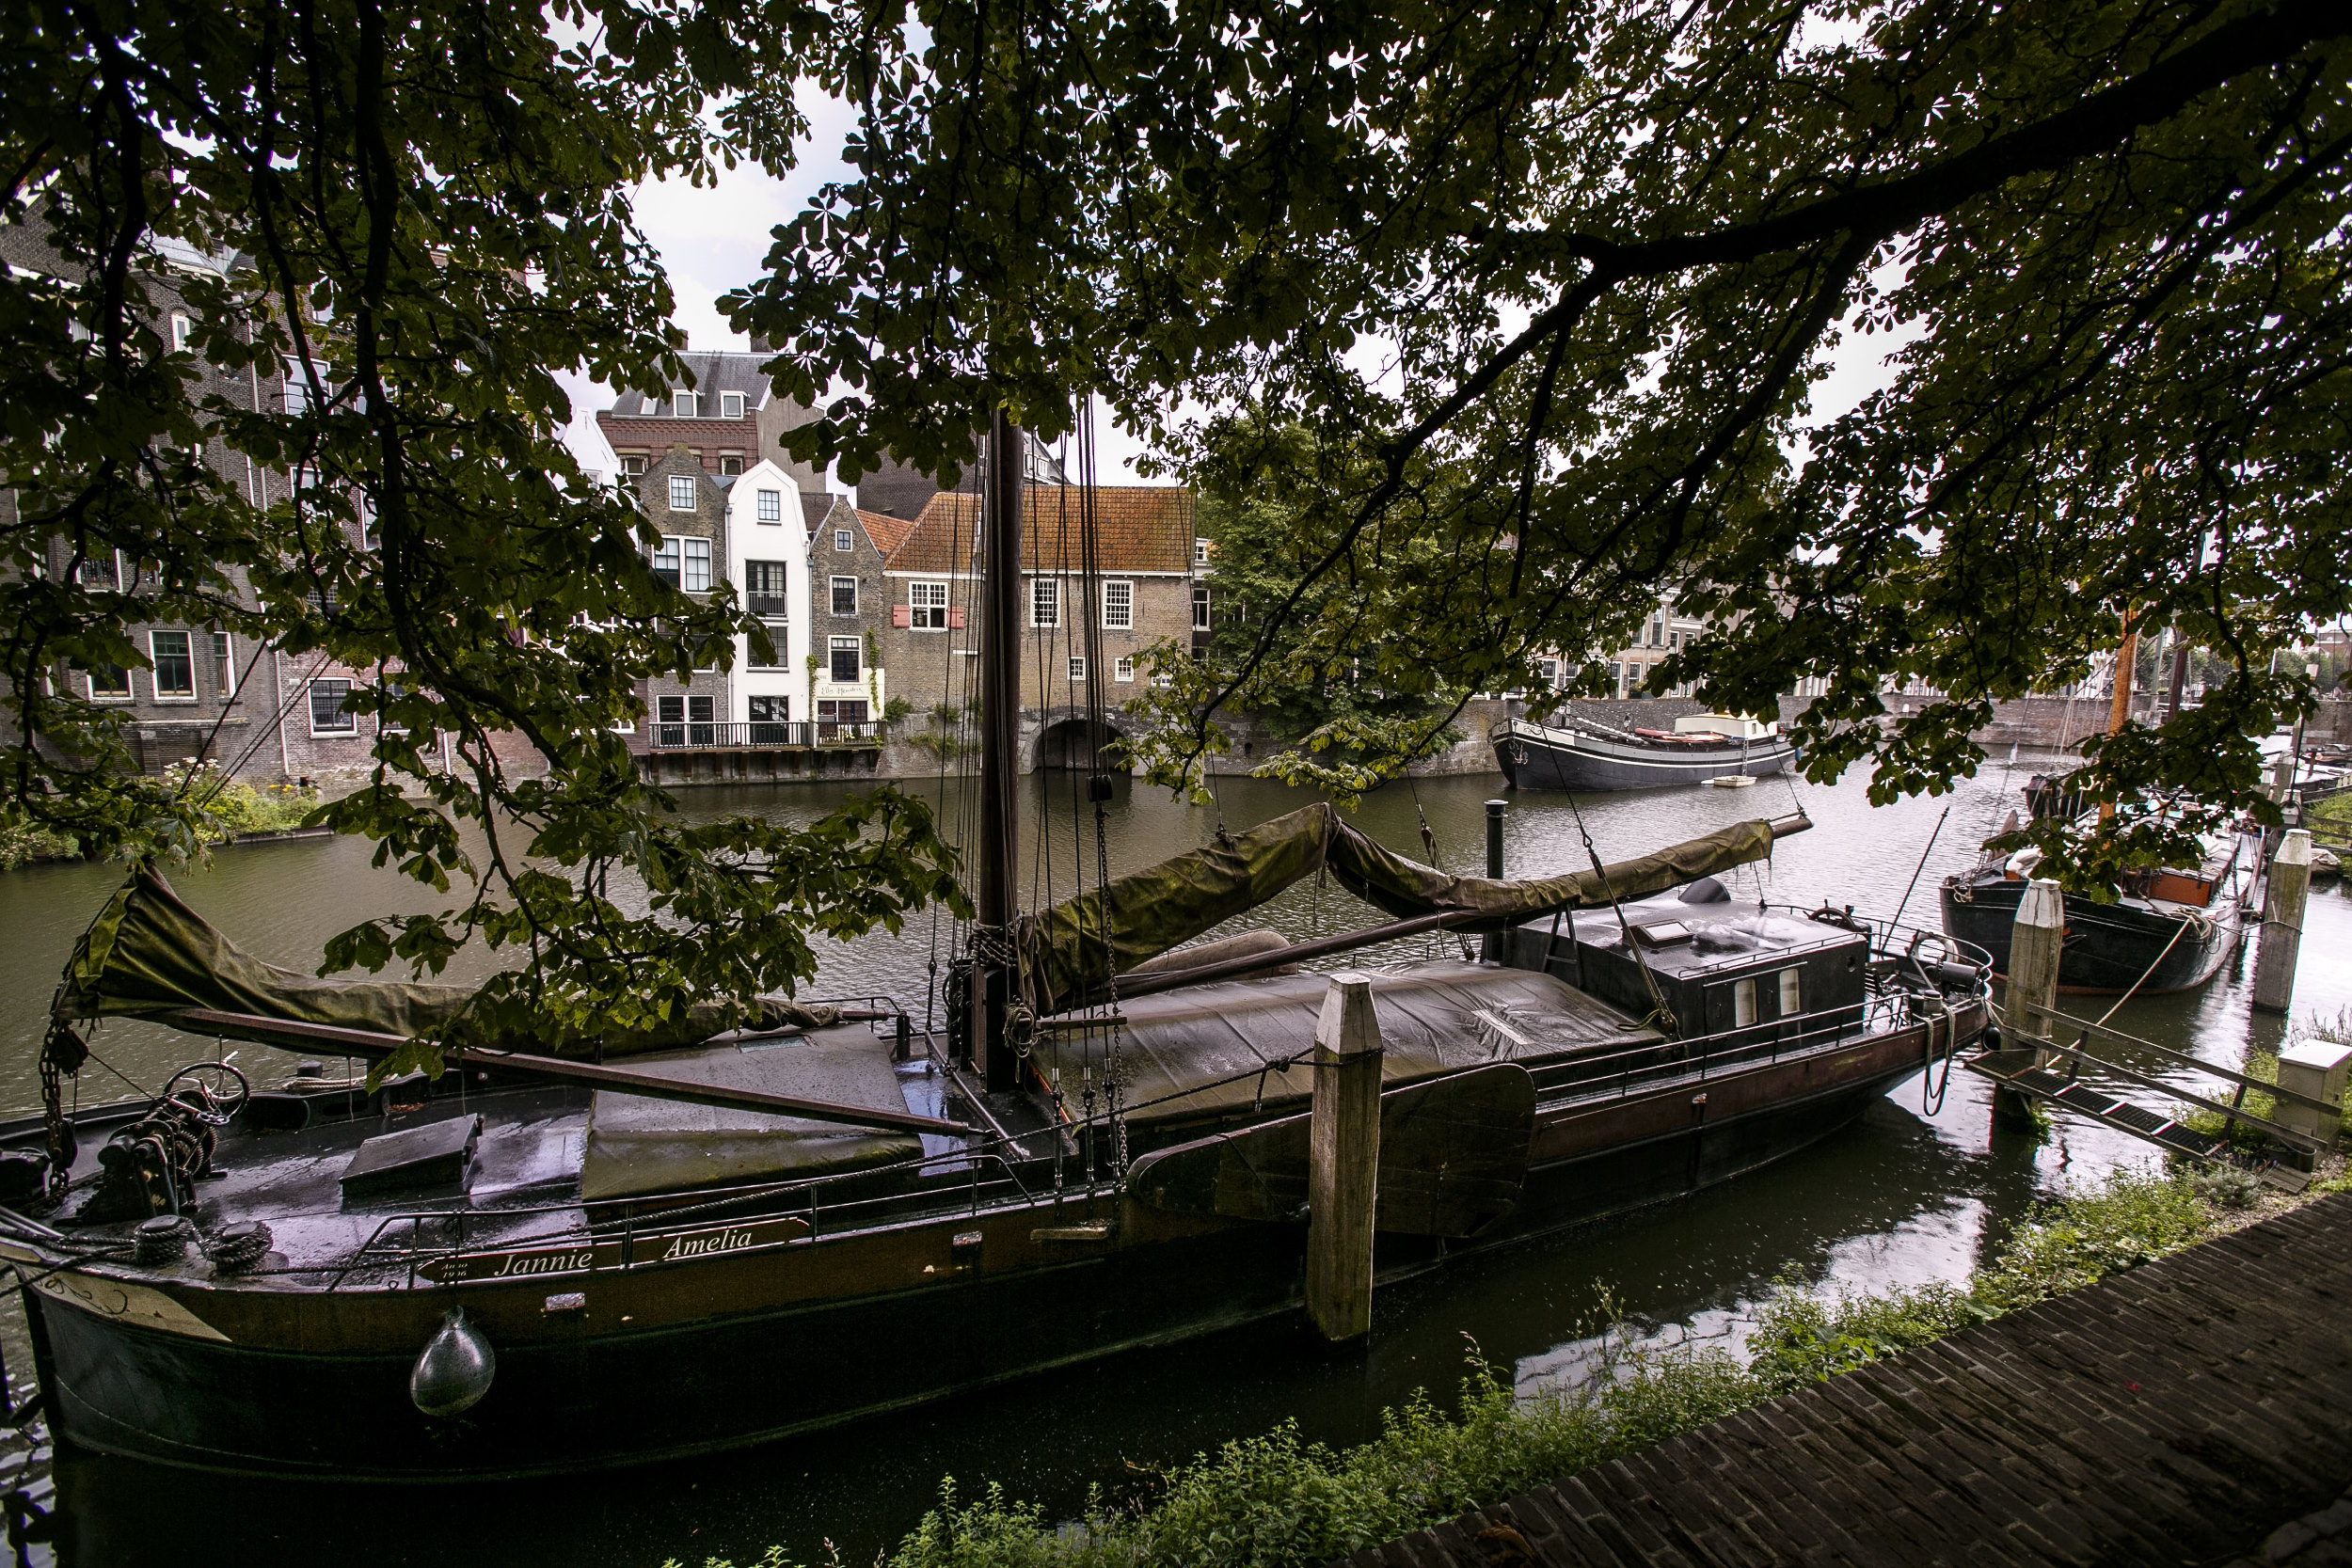 Rotterdam Delfshaven Boot Jannie Amelia Haven